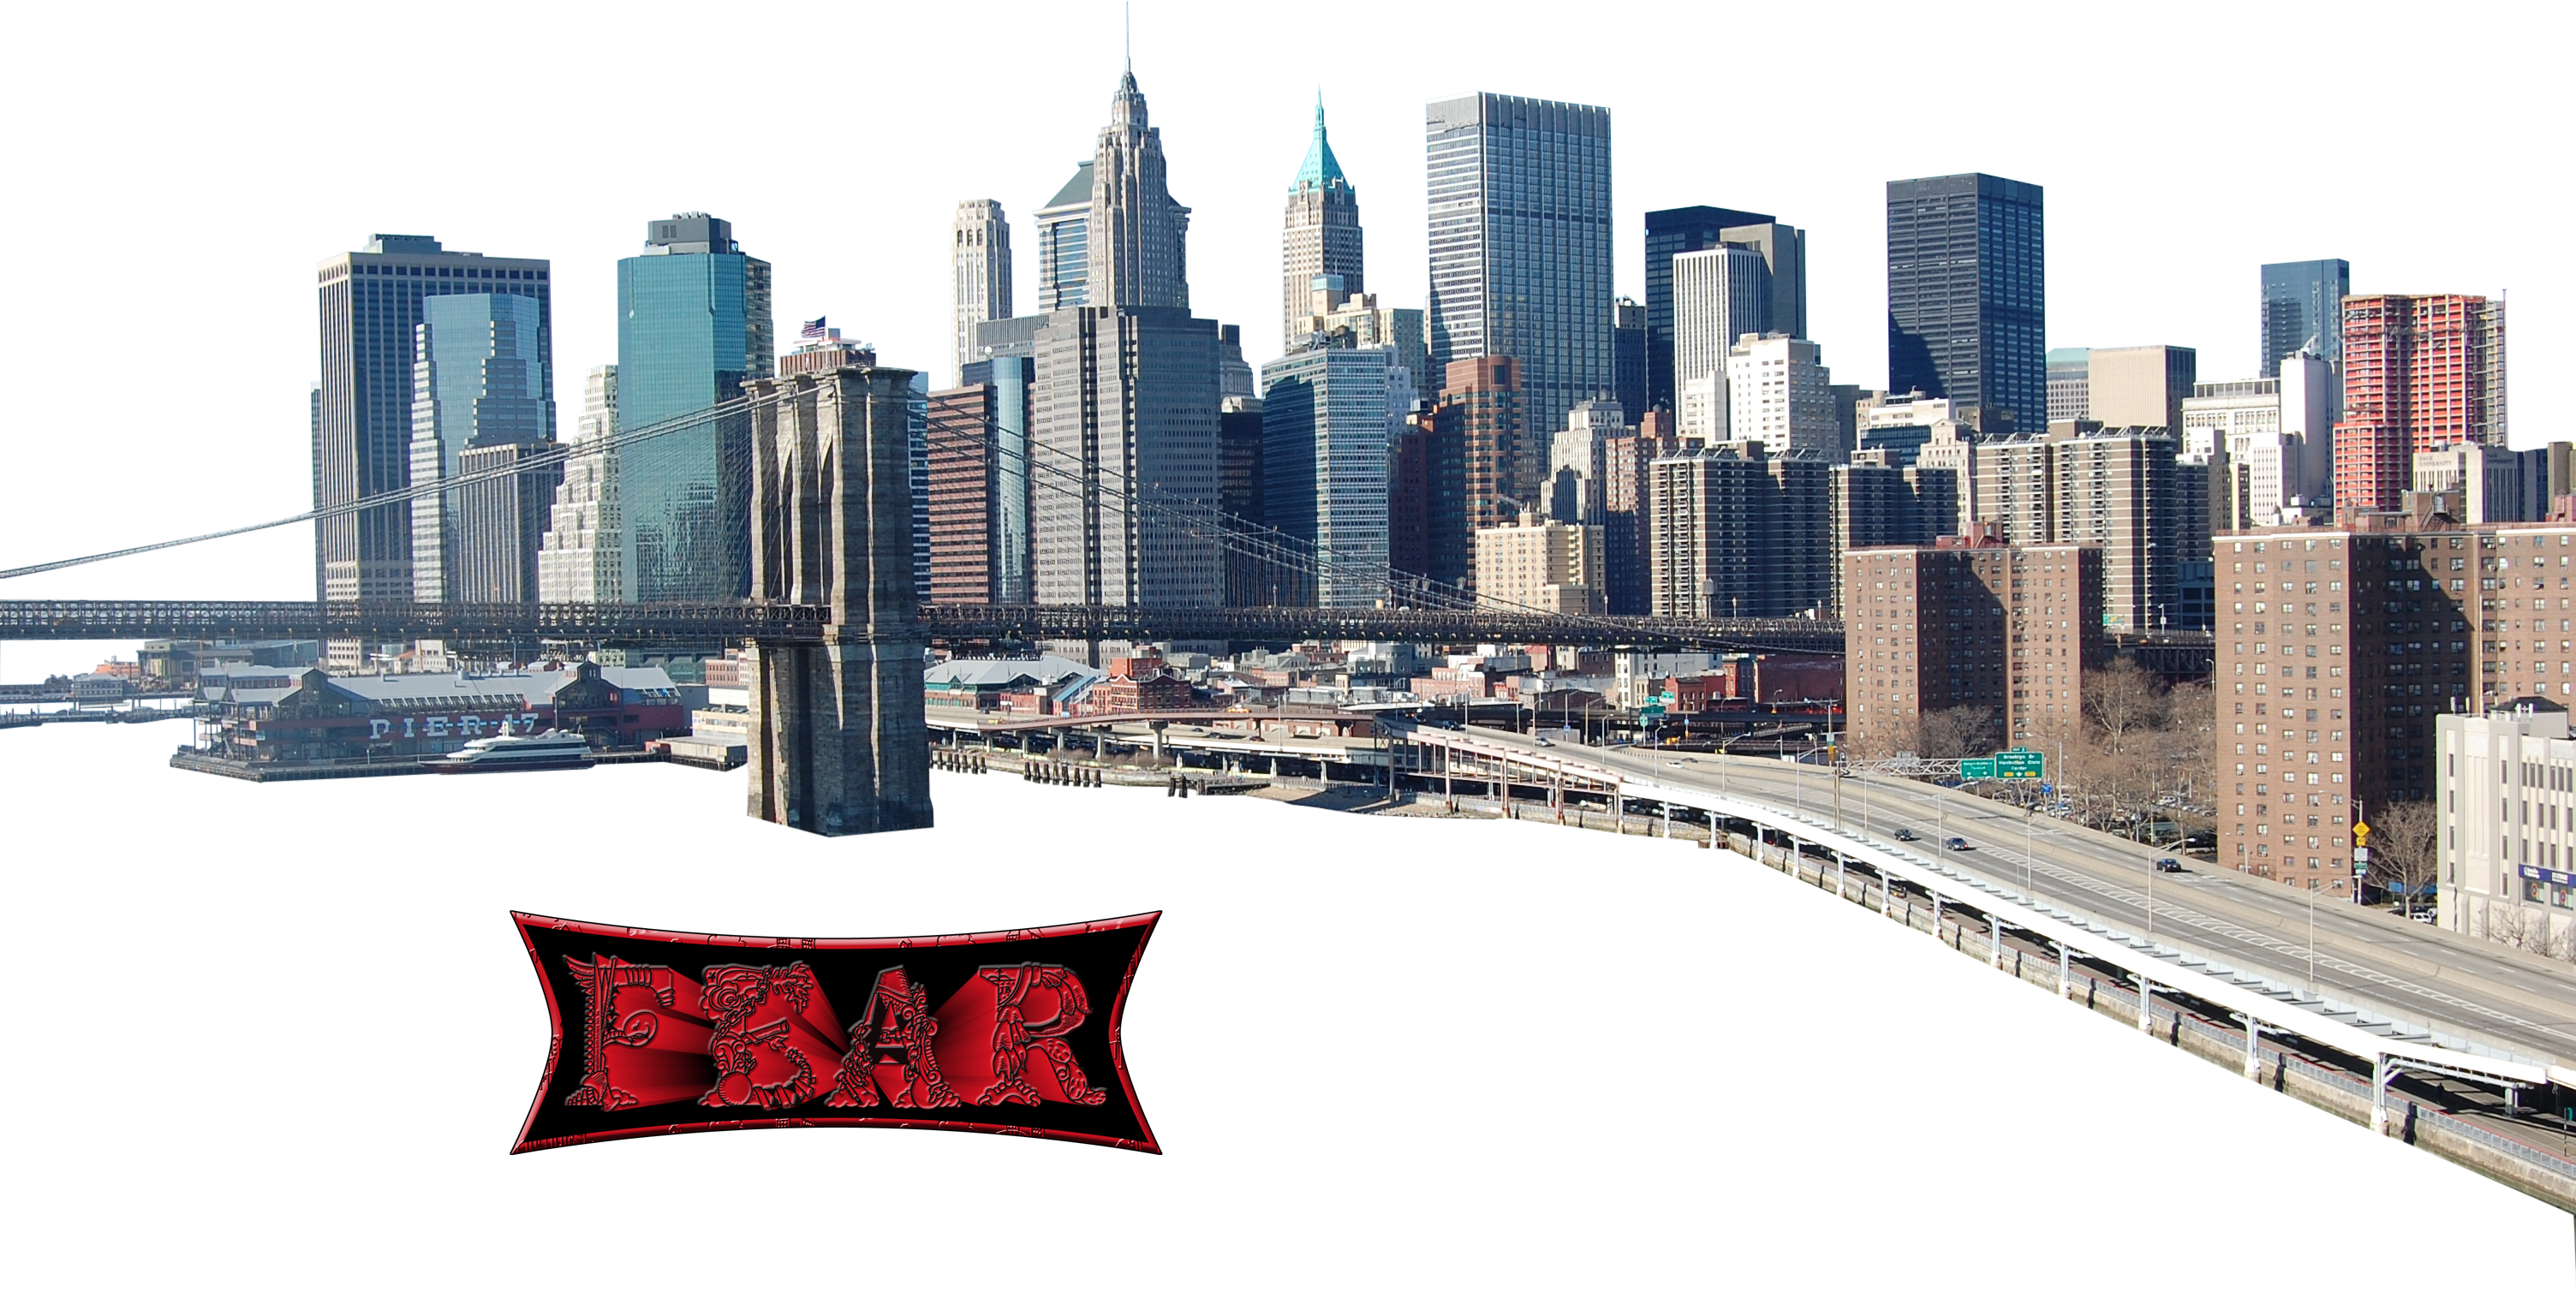 New York Png - New York PNG by fear-25 on DeviantArt